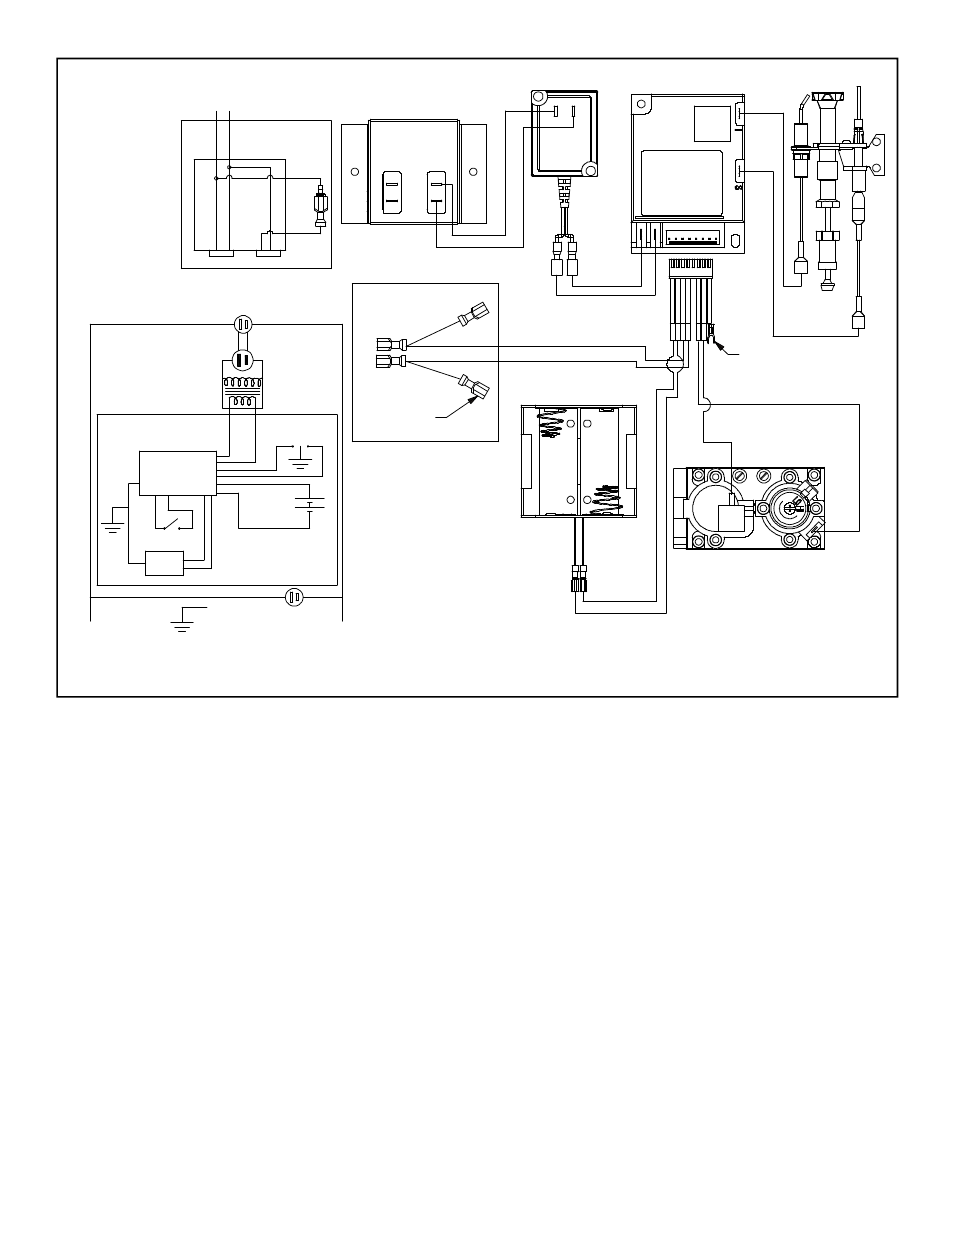 medium resolution of for intermittent pilot ignition ipi wiring hearth and home technologies gas stove l corner trc user manual page 36 40